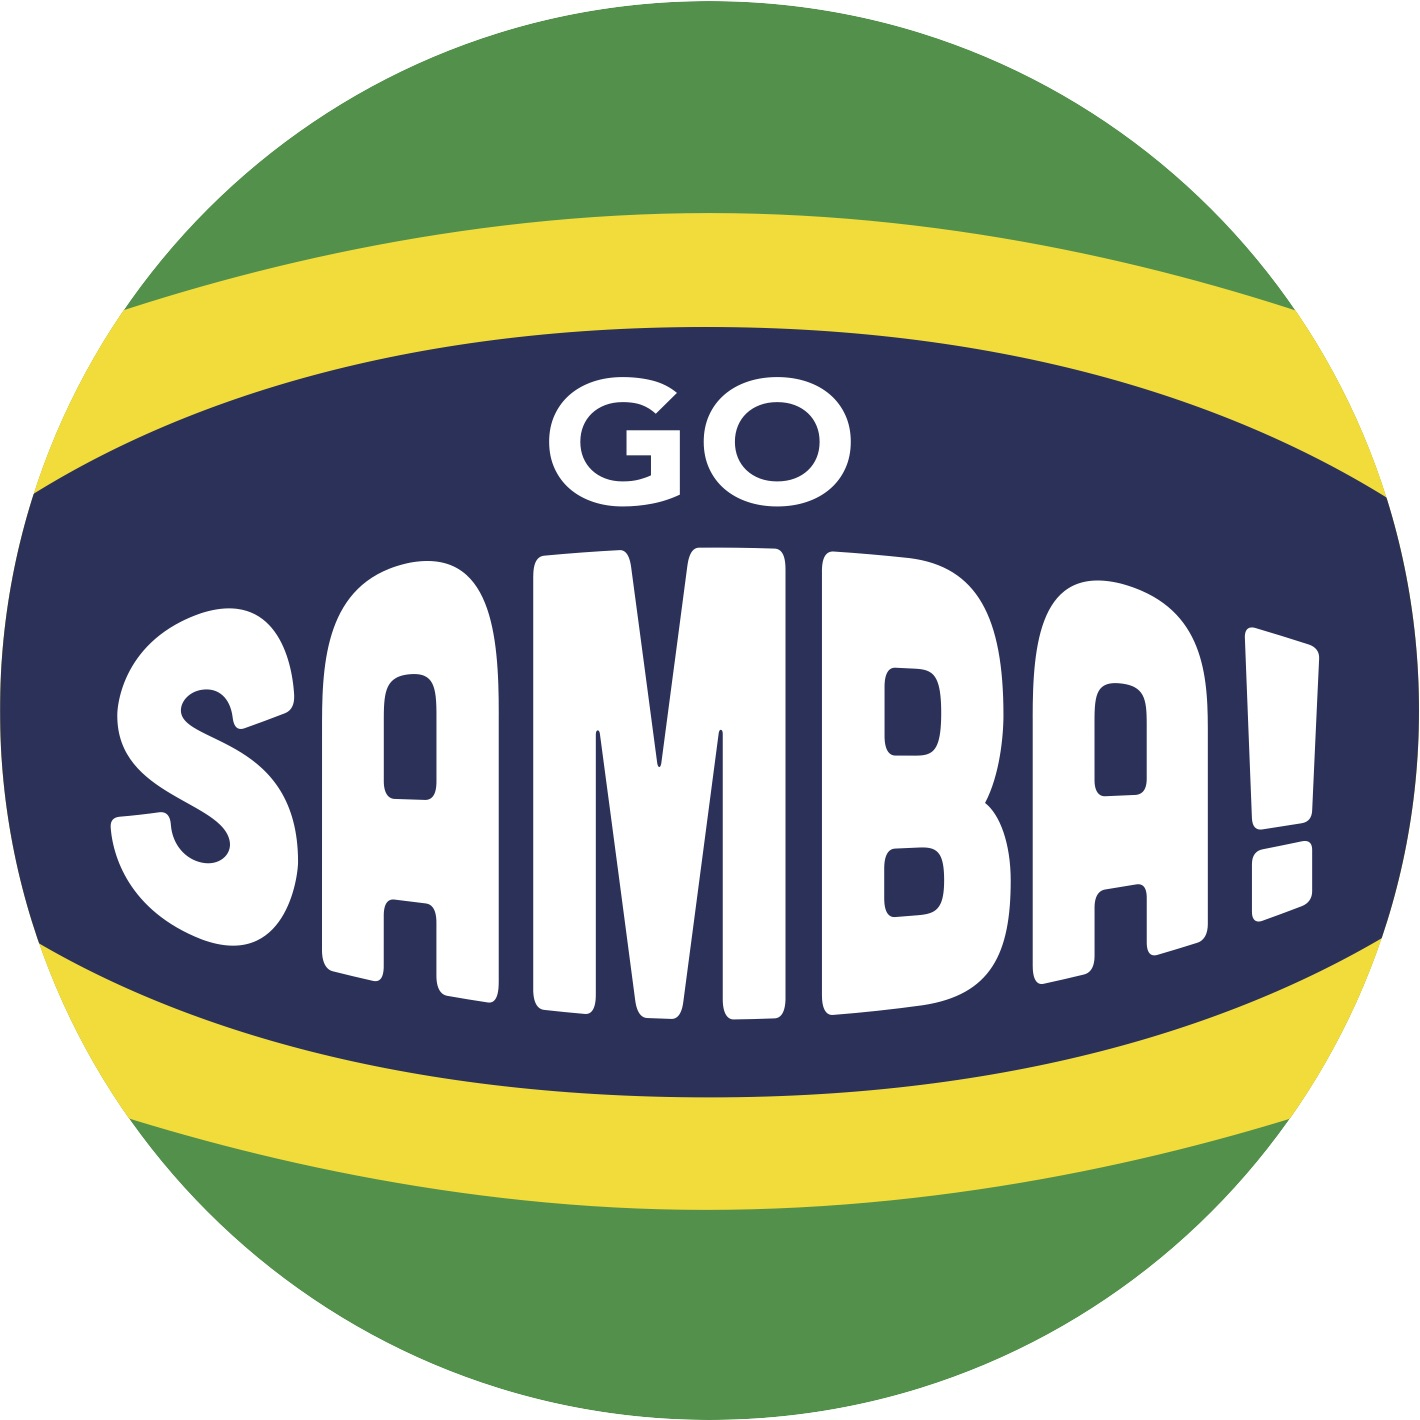 This episode sponsored by GoSamba.net - Brazilian drums in North America.